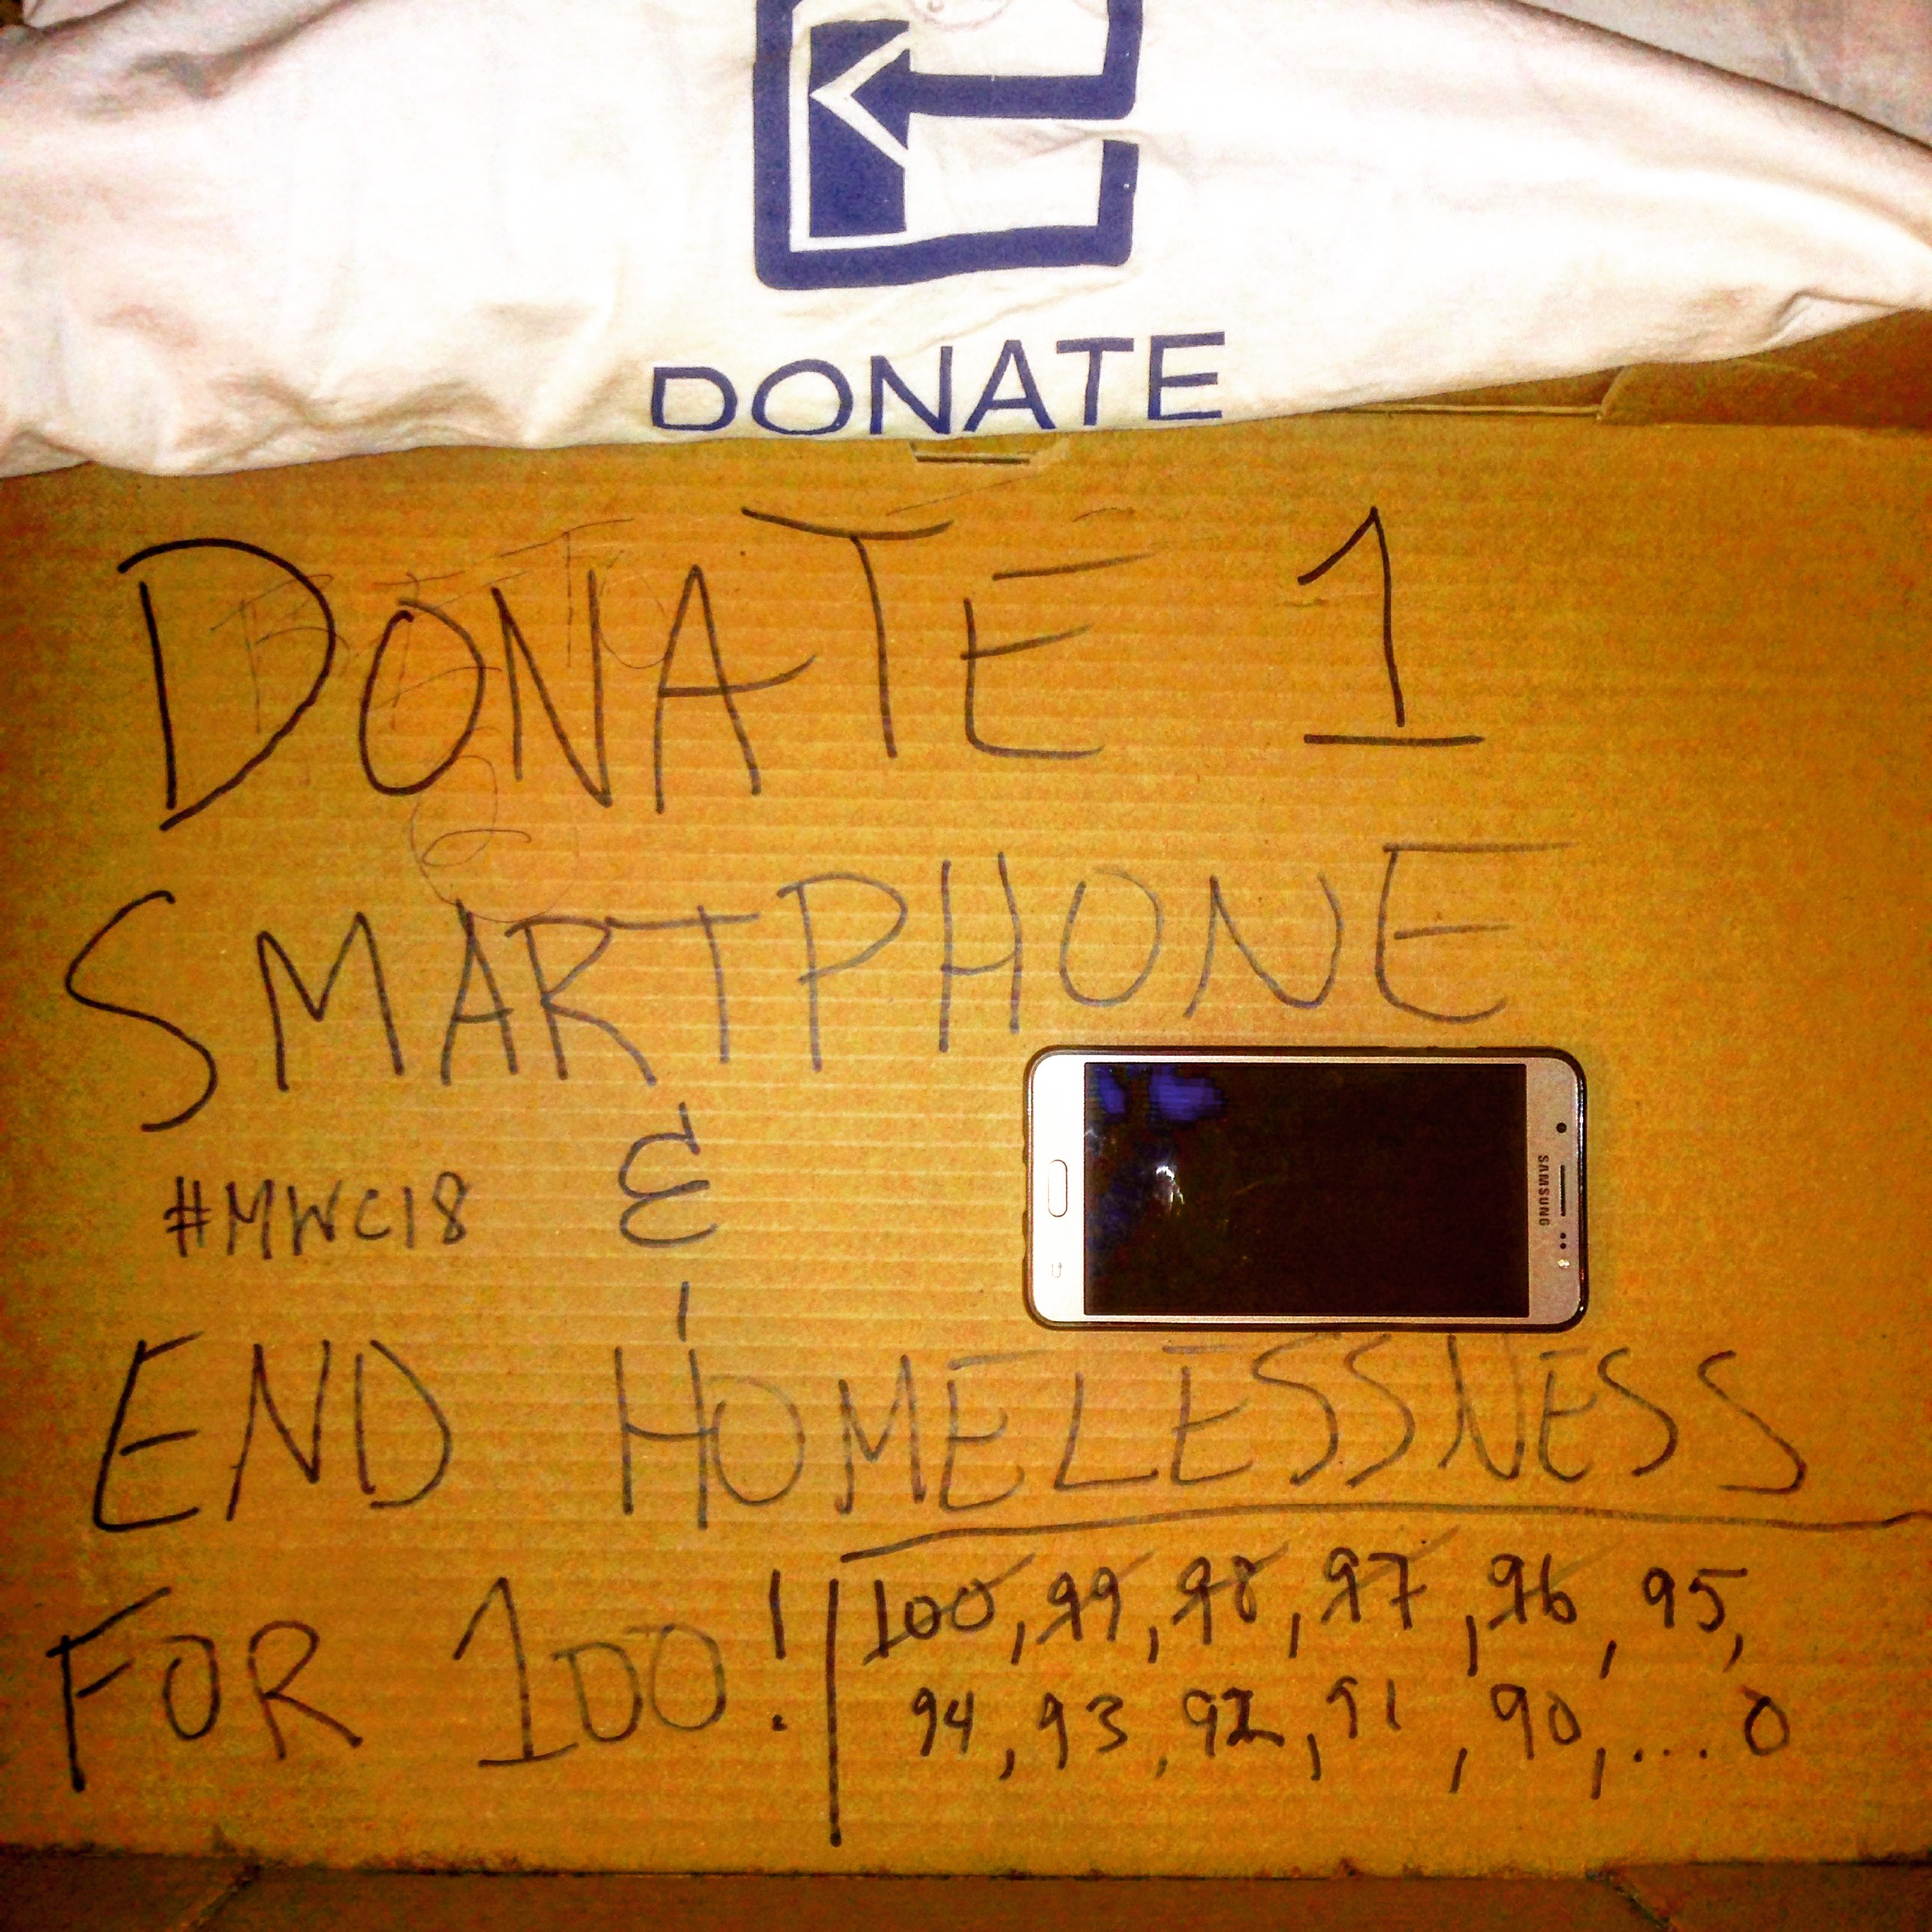 We have already received 5 smartphones so we only need 95 more! 1 LG, 2 Samsungs & 2  iPhones.